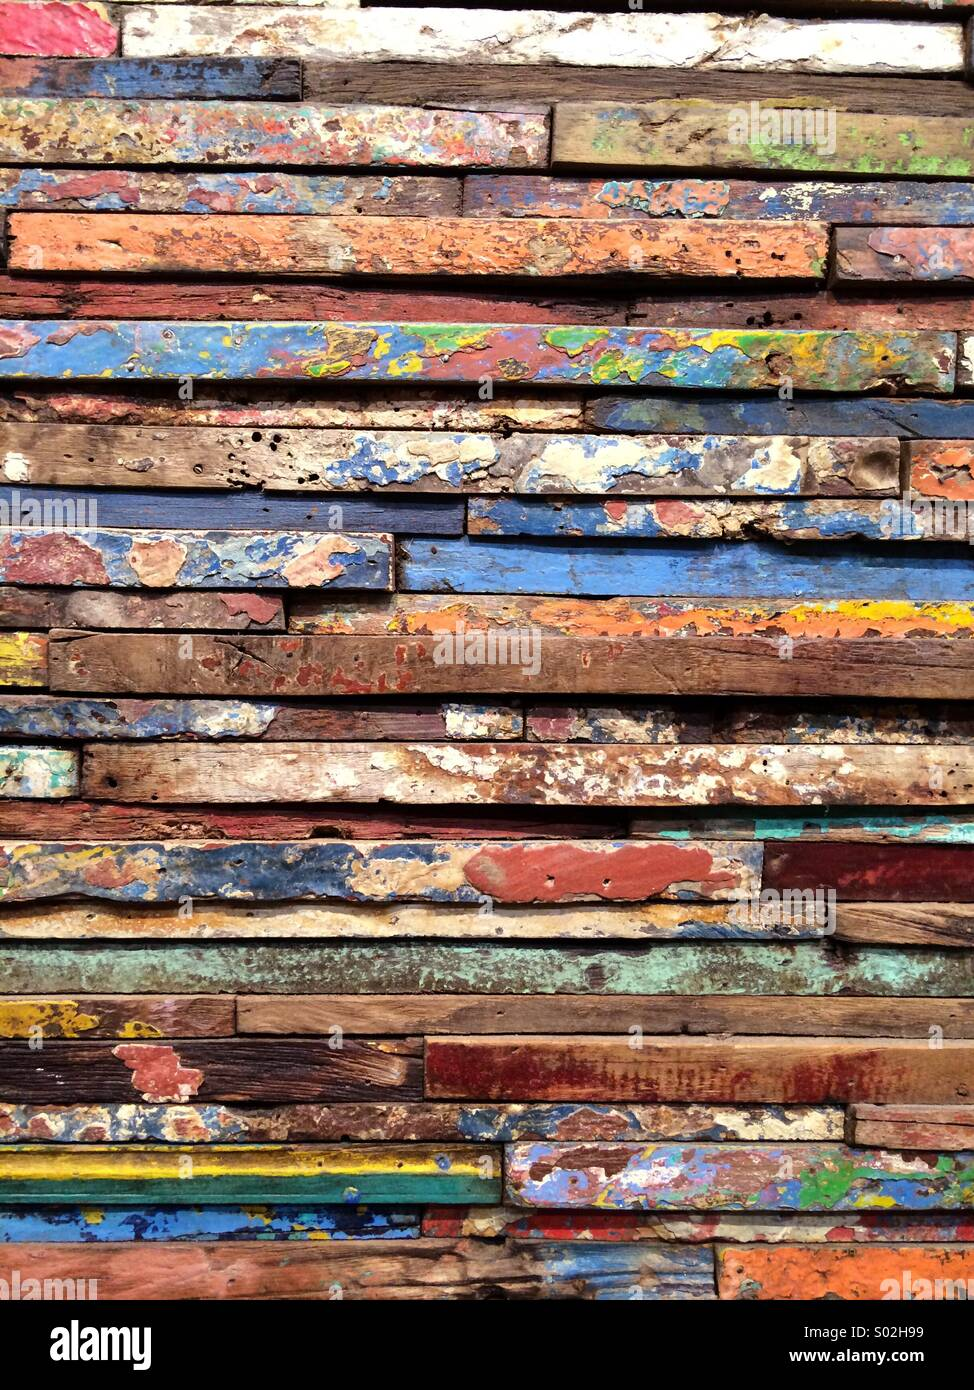 Repurposed Window Frames (vertical) now used as wall art. Reclaimed wood wall. - Stock Image